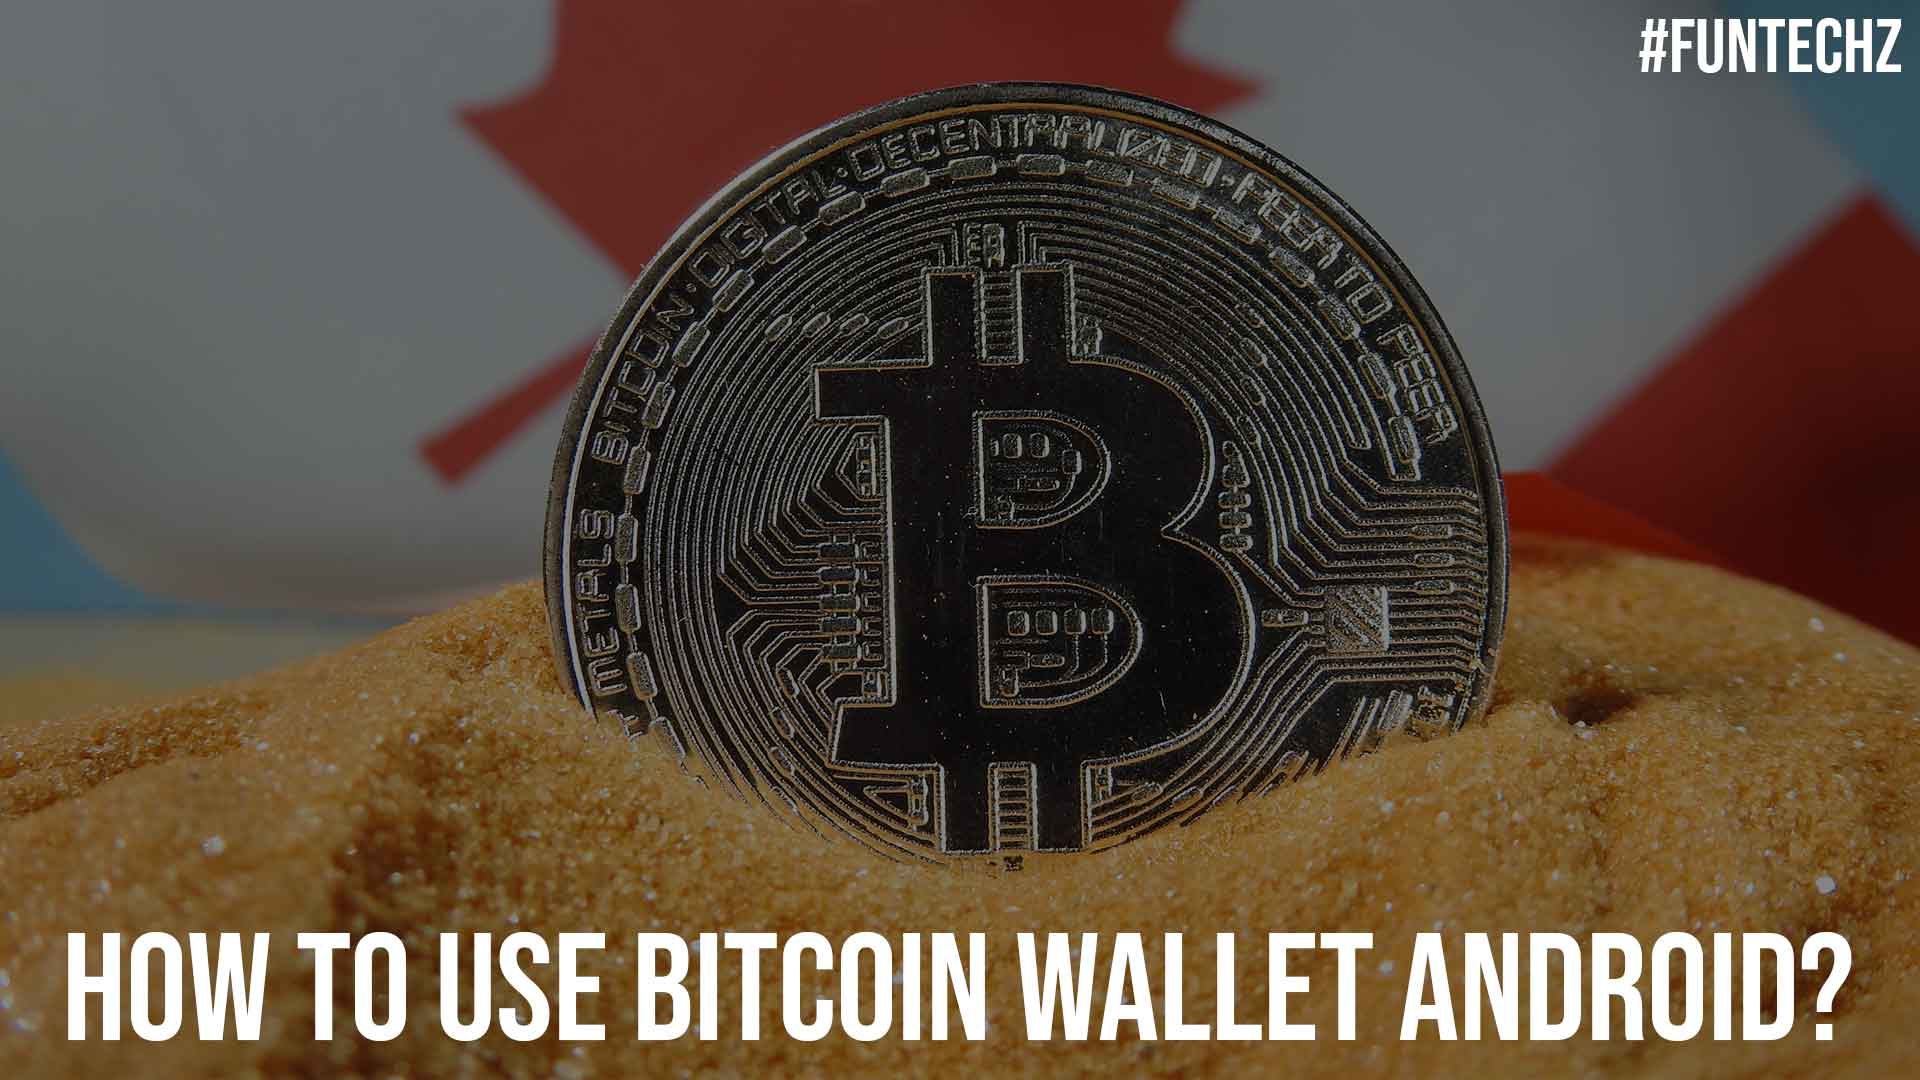 How to Use Bitcoin Wallet Android